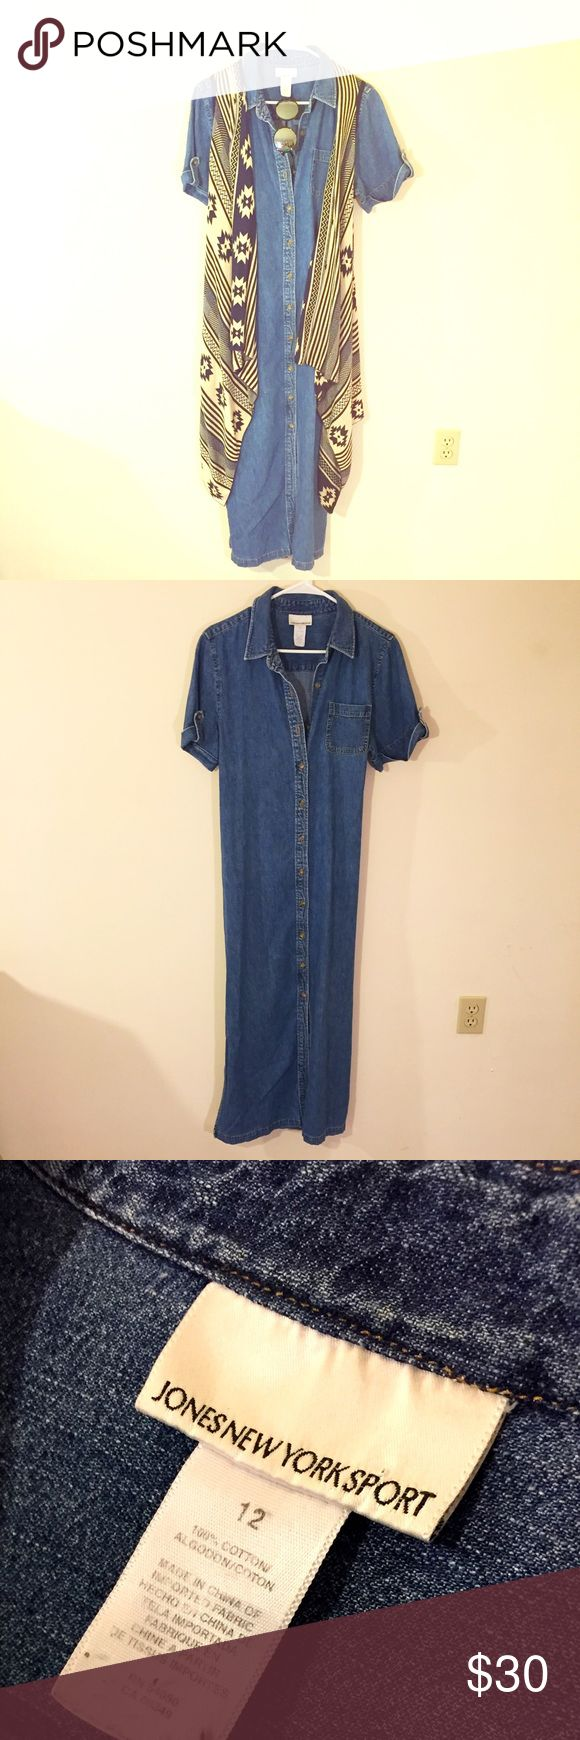 Phoebe Buffay Long Denim Dress Phoebe loved her some denim dresses. Add a long vest, some chunky platforms, and a floppy hat to give this vintage dress a festival vibe. Size 12 - sale is final. Ships in 2-3 days from Kingston NY. Sorry accessories not for sale - just the dress. ⭐️ Jones New York Sport Dresses